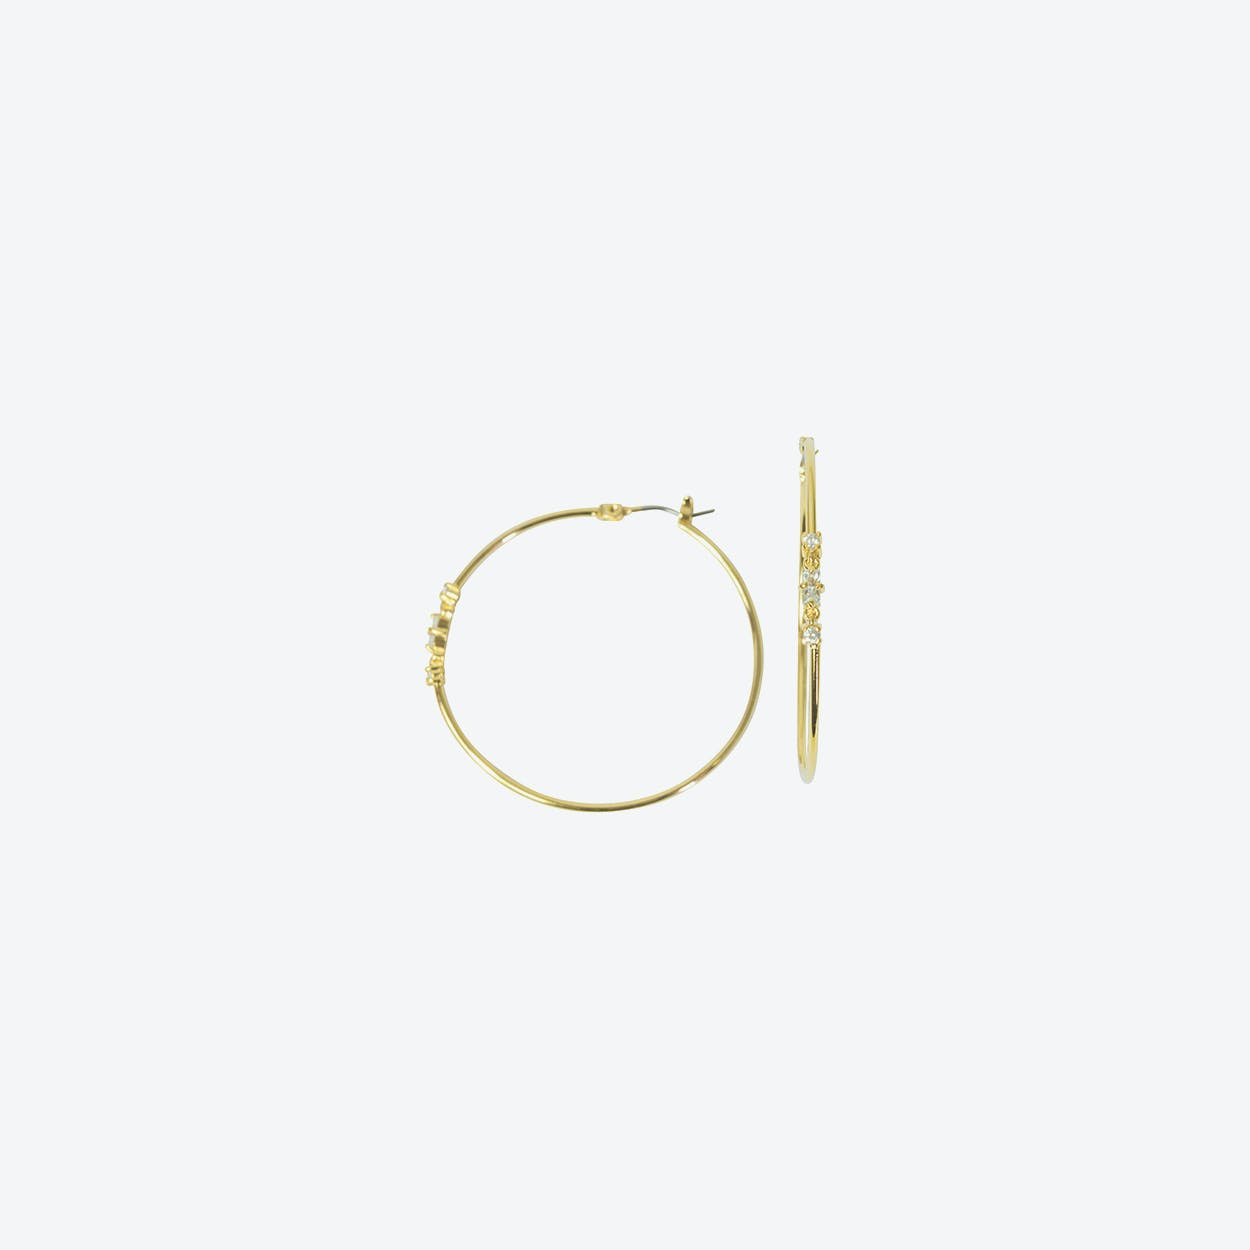 18k Gold Hoop Earring with Crystal